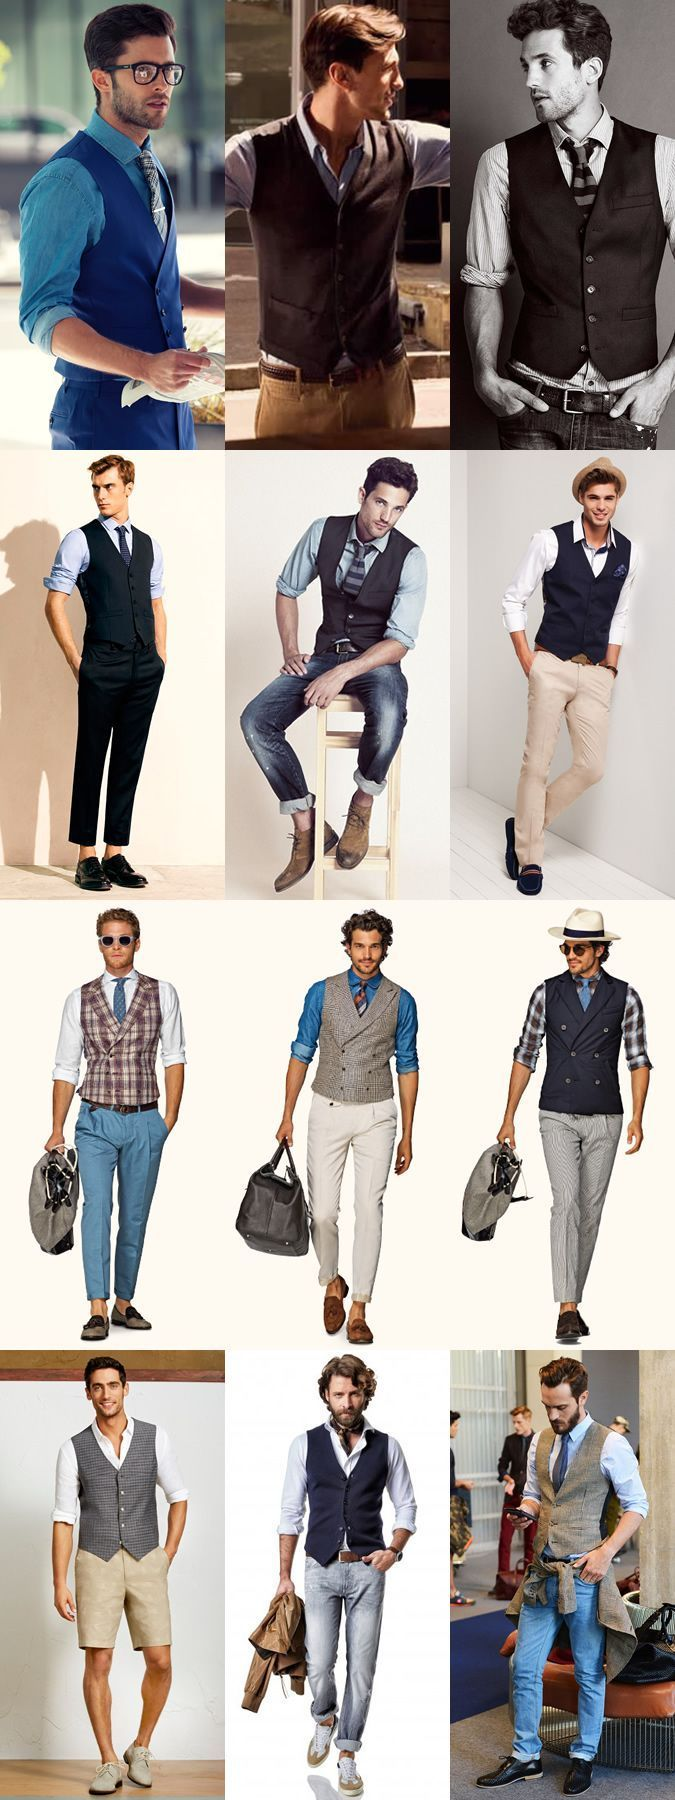 24 Men's Waistcoat/Vest Outfit Ideas for the Summer http://www.99wtf.net/men/mens-fasion/idea-dress-men-dark-skin/